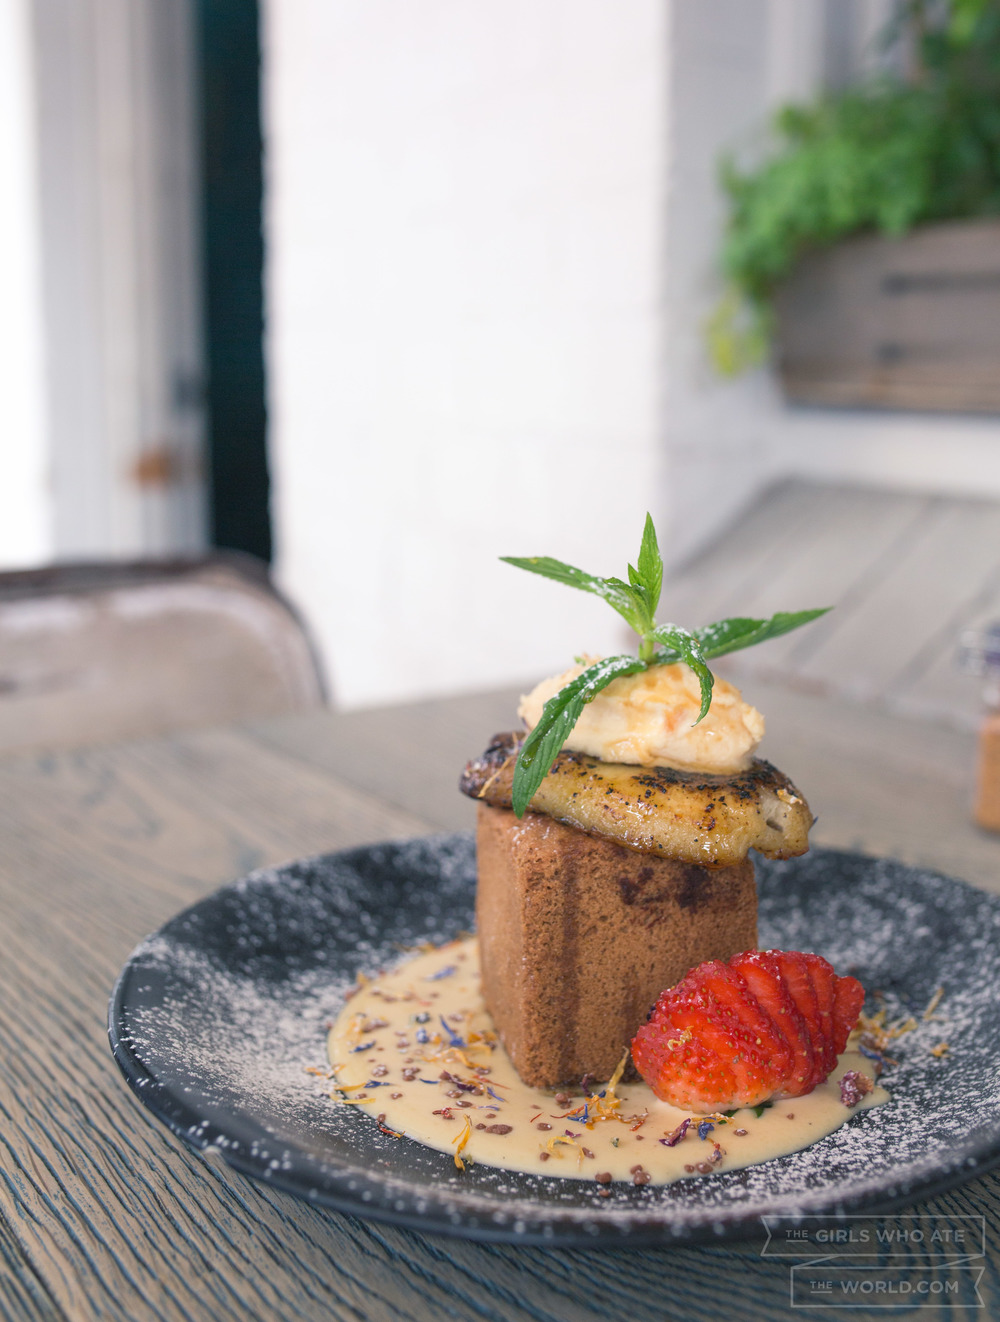 The Lost Cookie of Pompeii (17) - Chocolate lava cookie, peanut butter mascarpone, banana, chocolate covered popping candy and crème anglaise